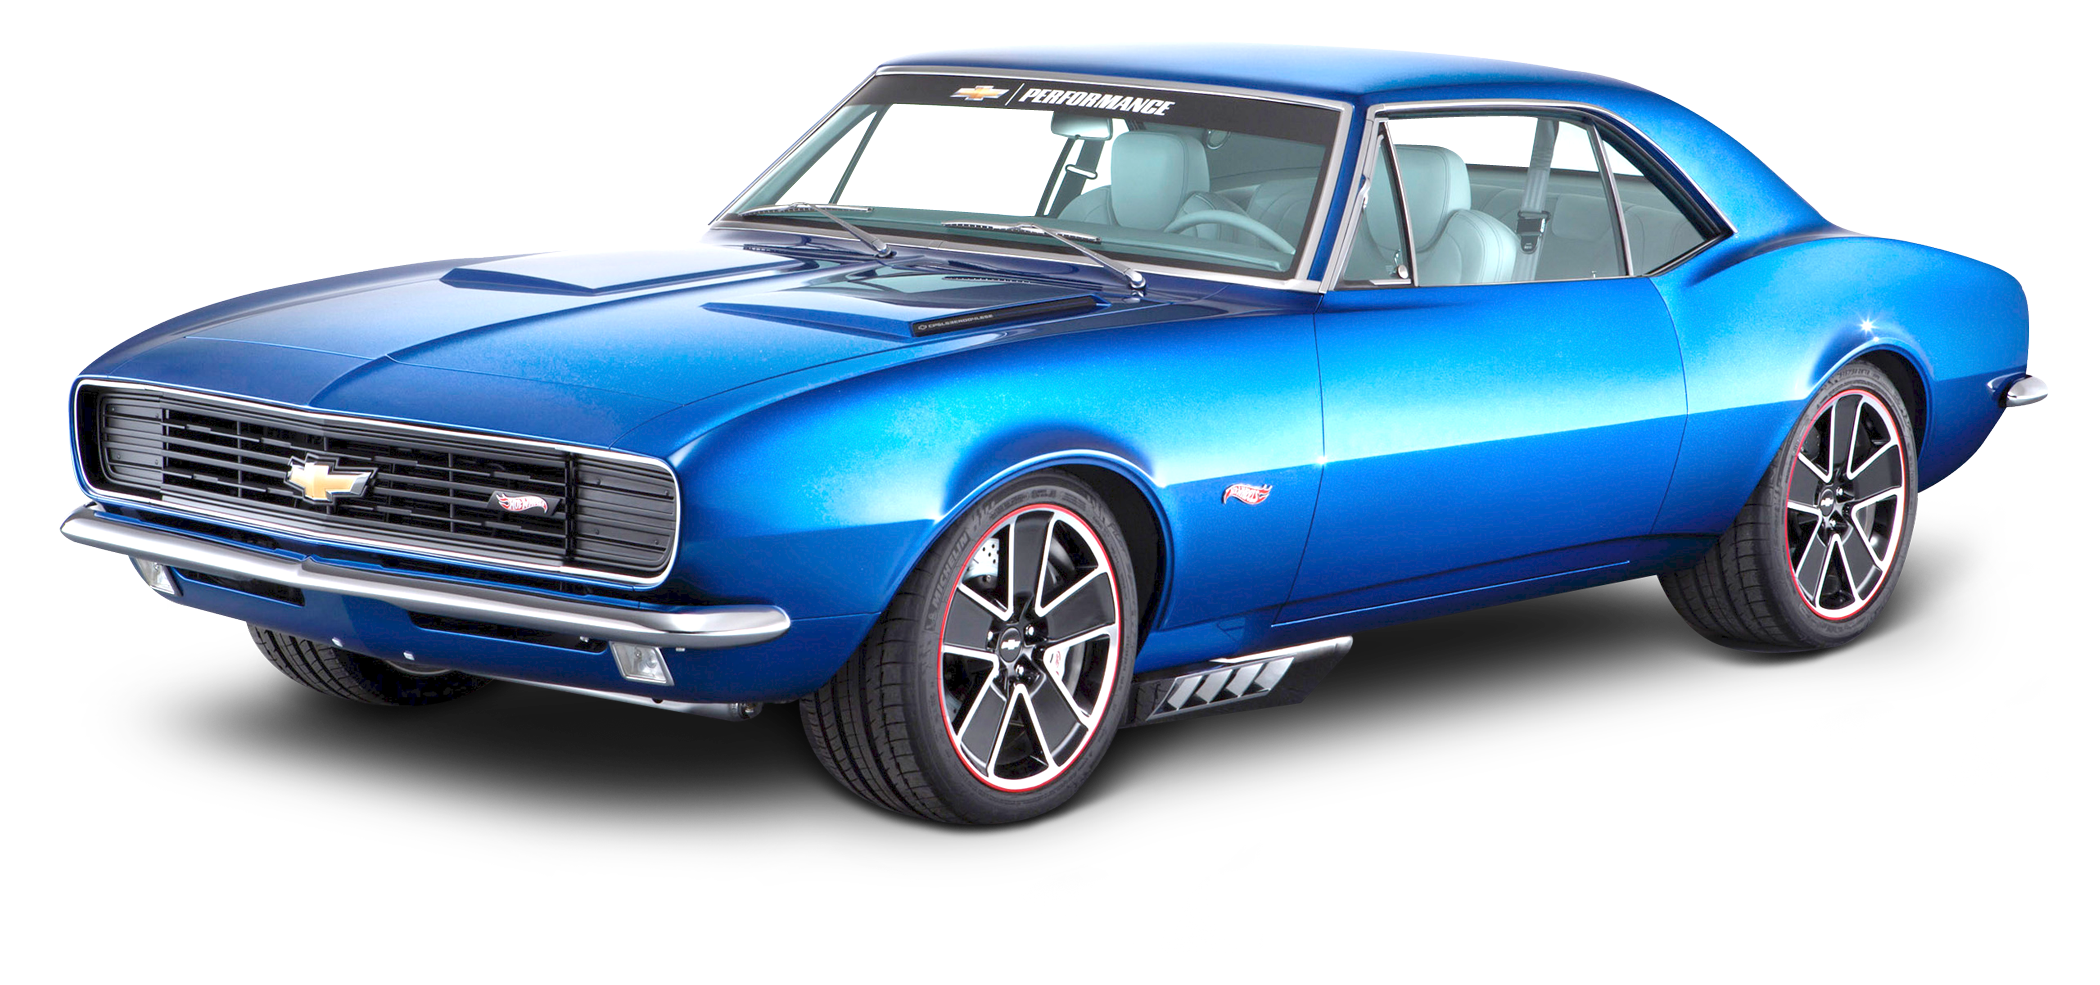 Muscle car clipart free clip library download Chevrolet Camaro PNG Image - PurePNG | Free transparent CC0 PNG ... clip library download